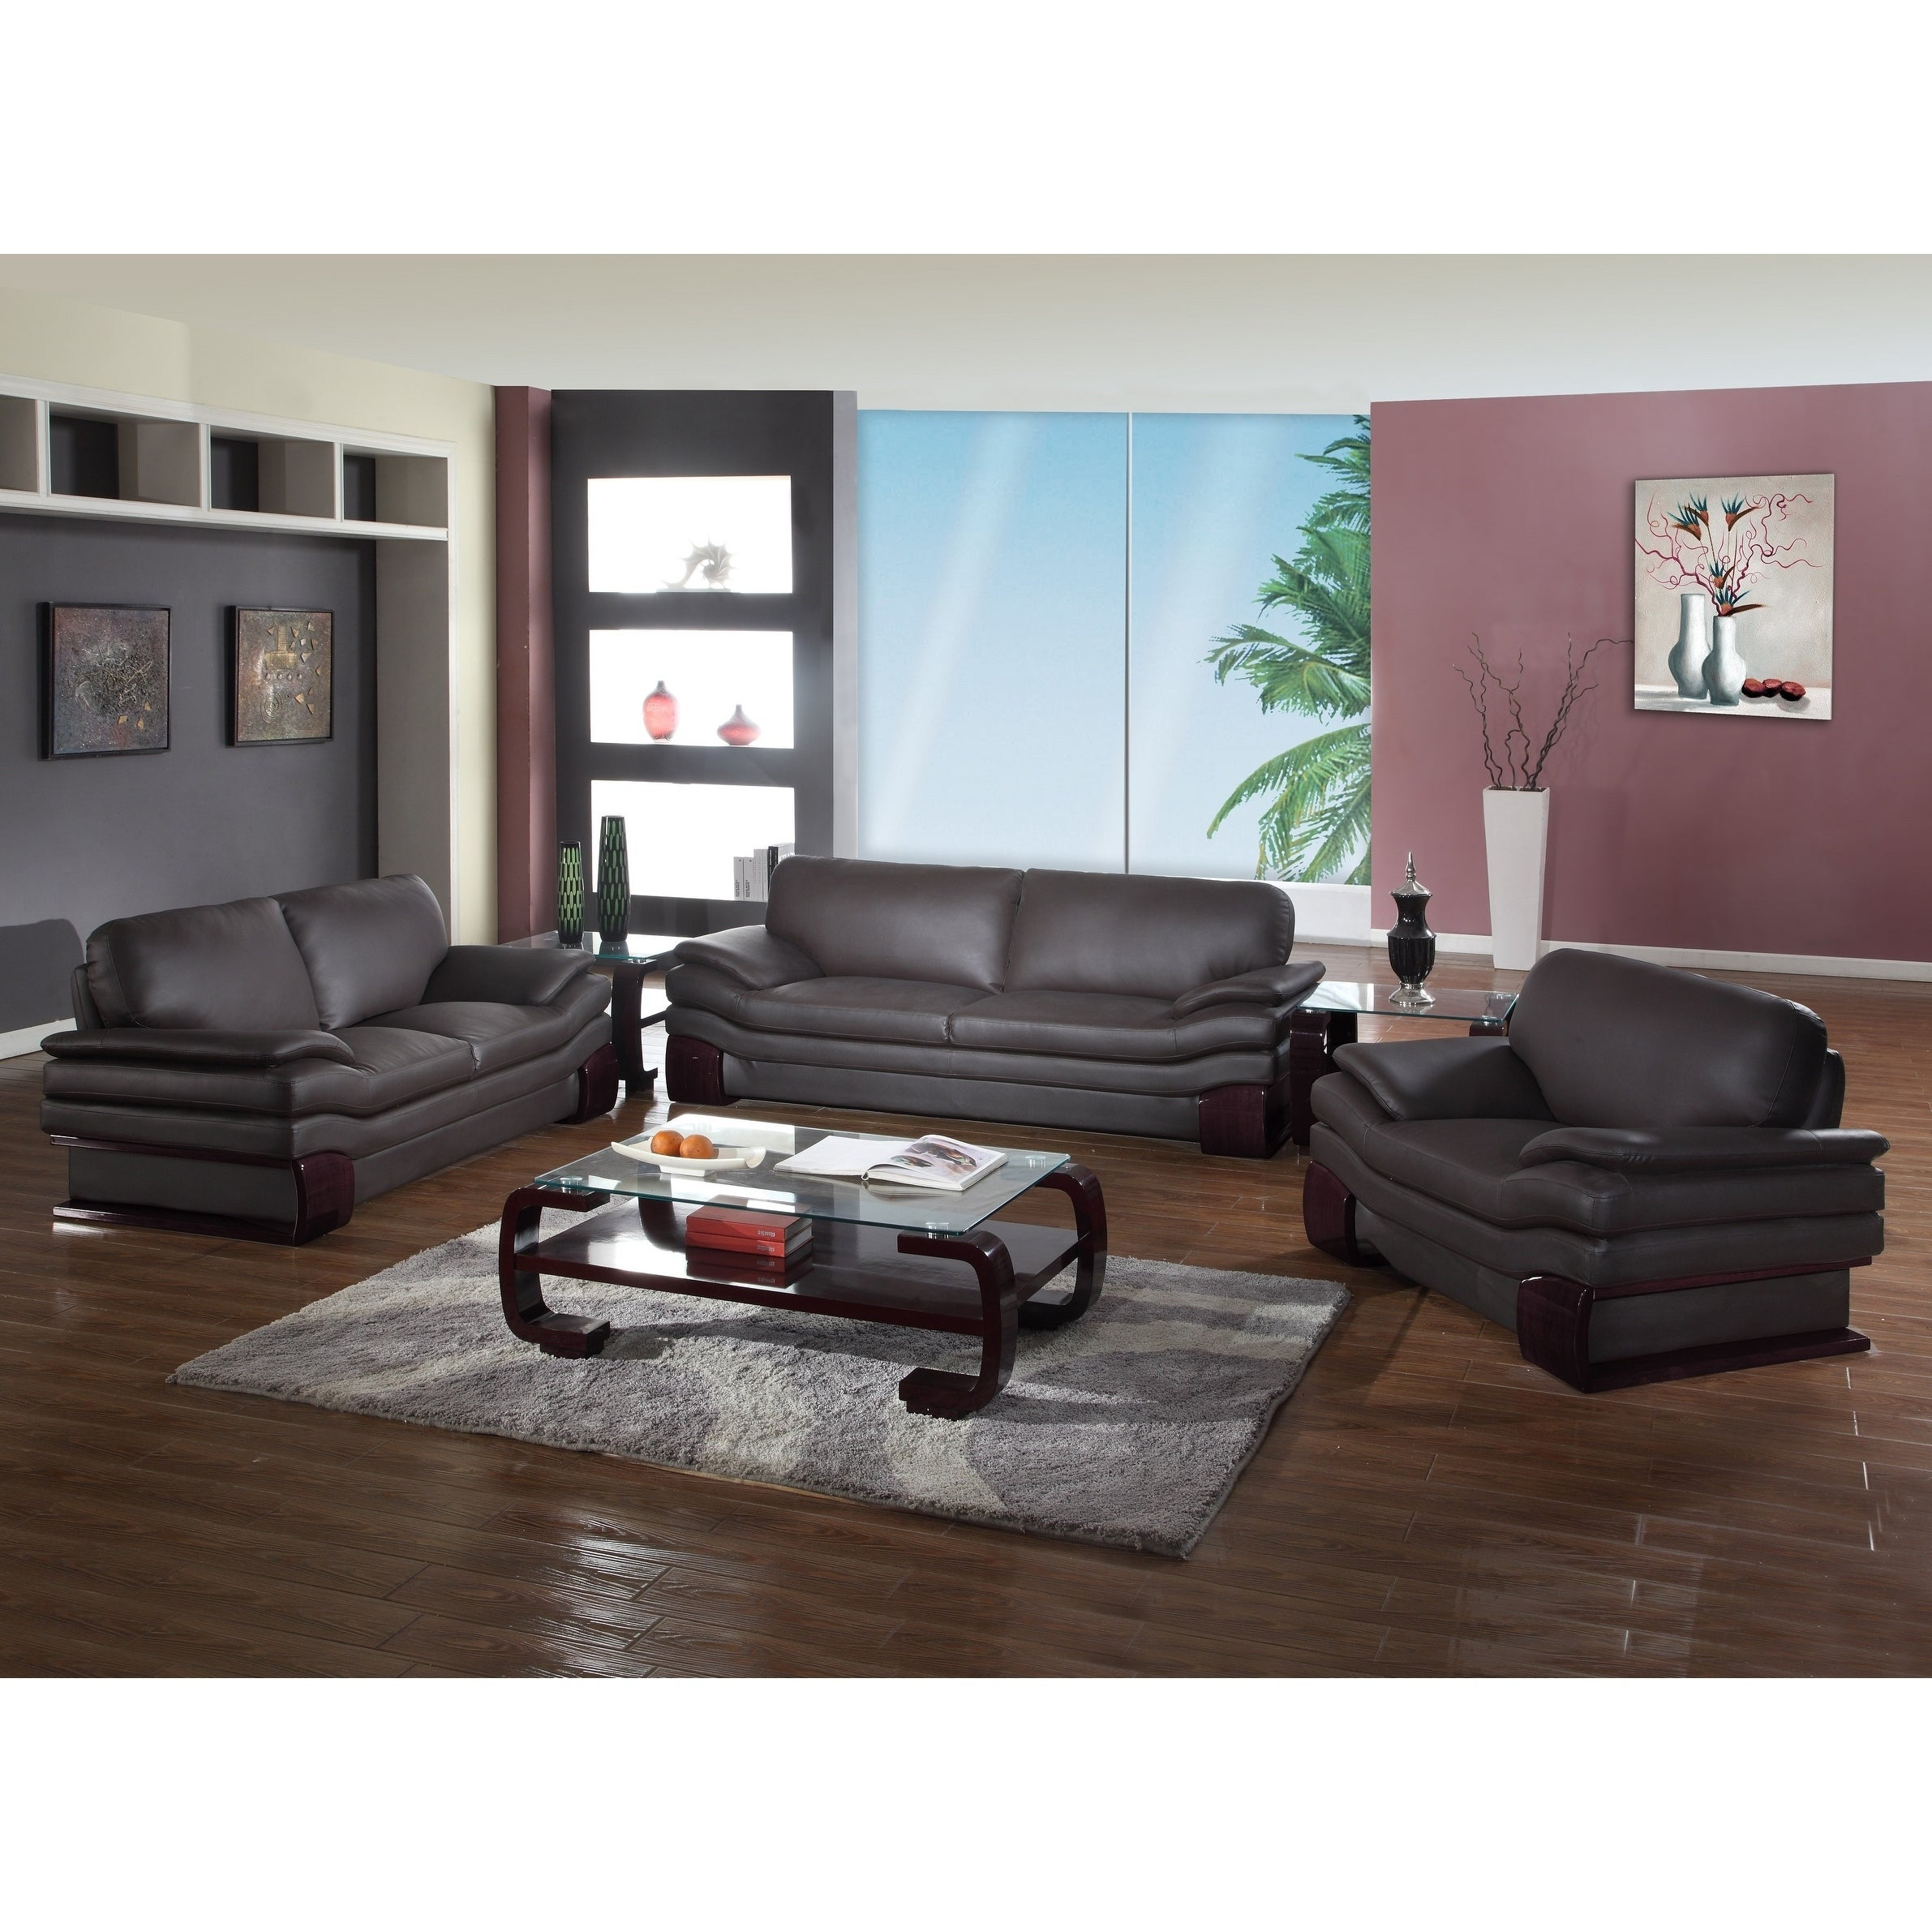 3 Piece Living Room Sofa Set